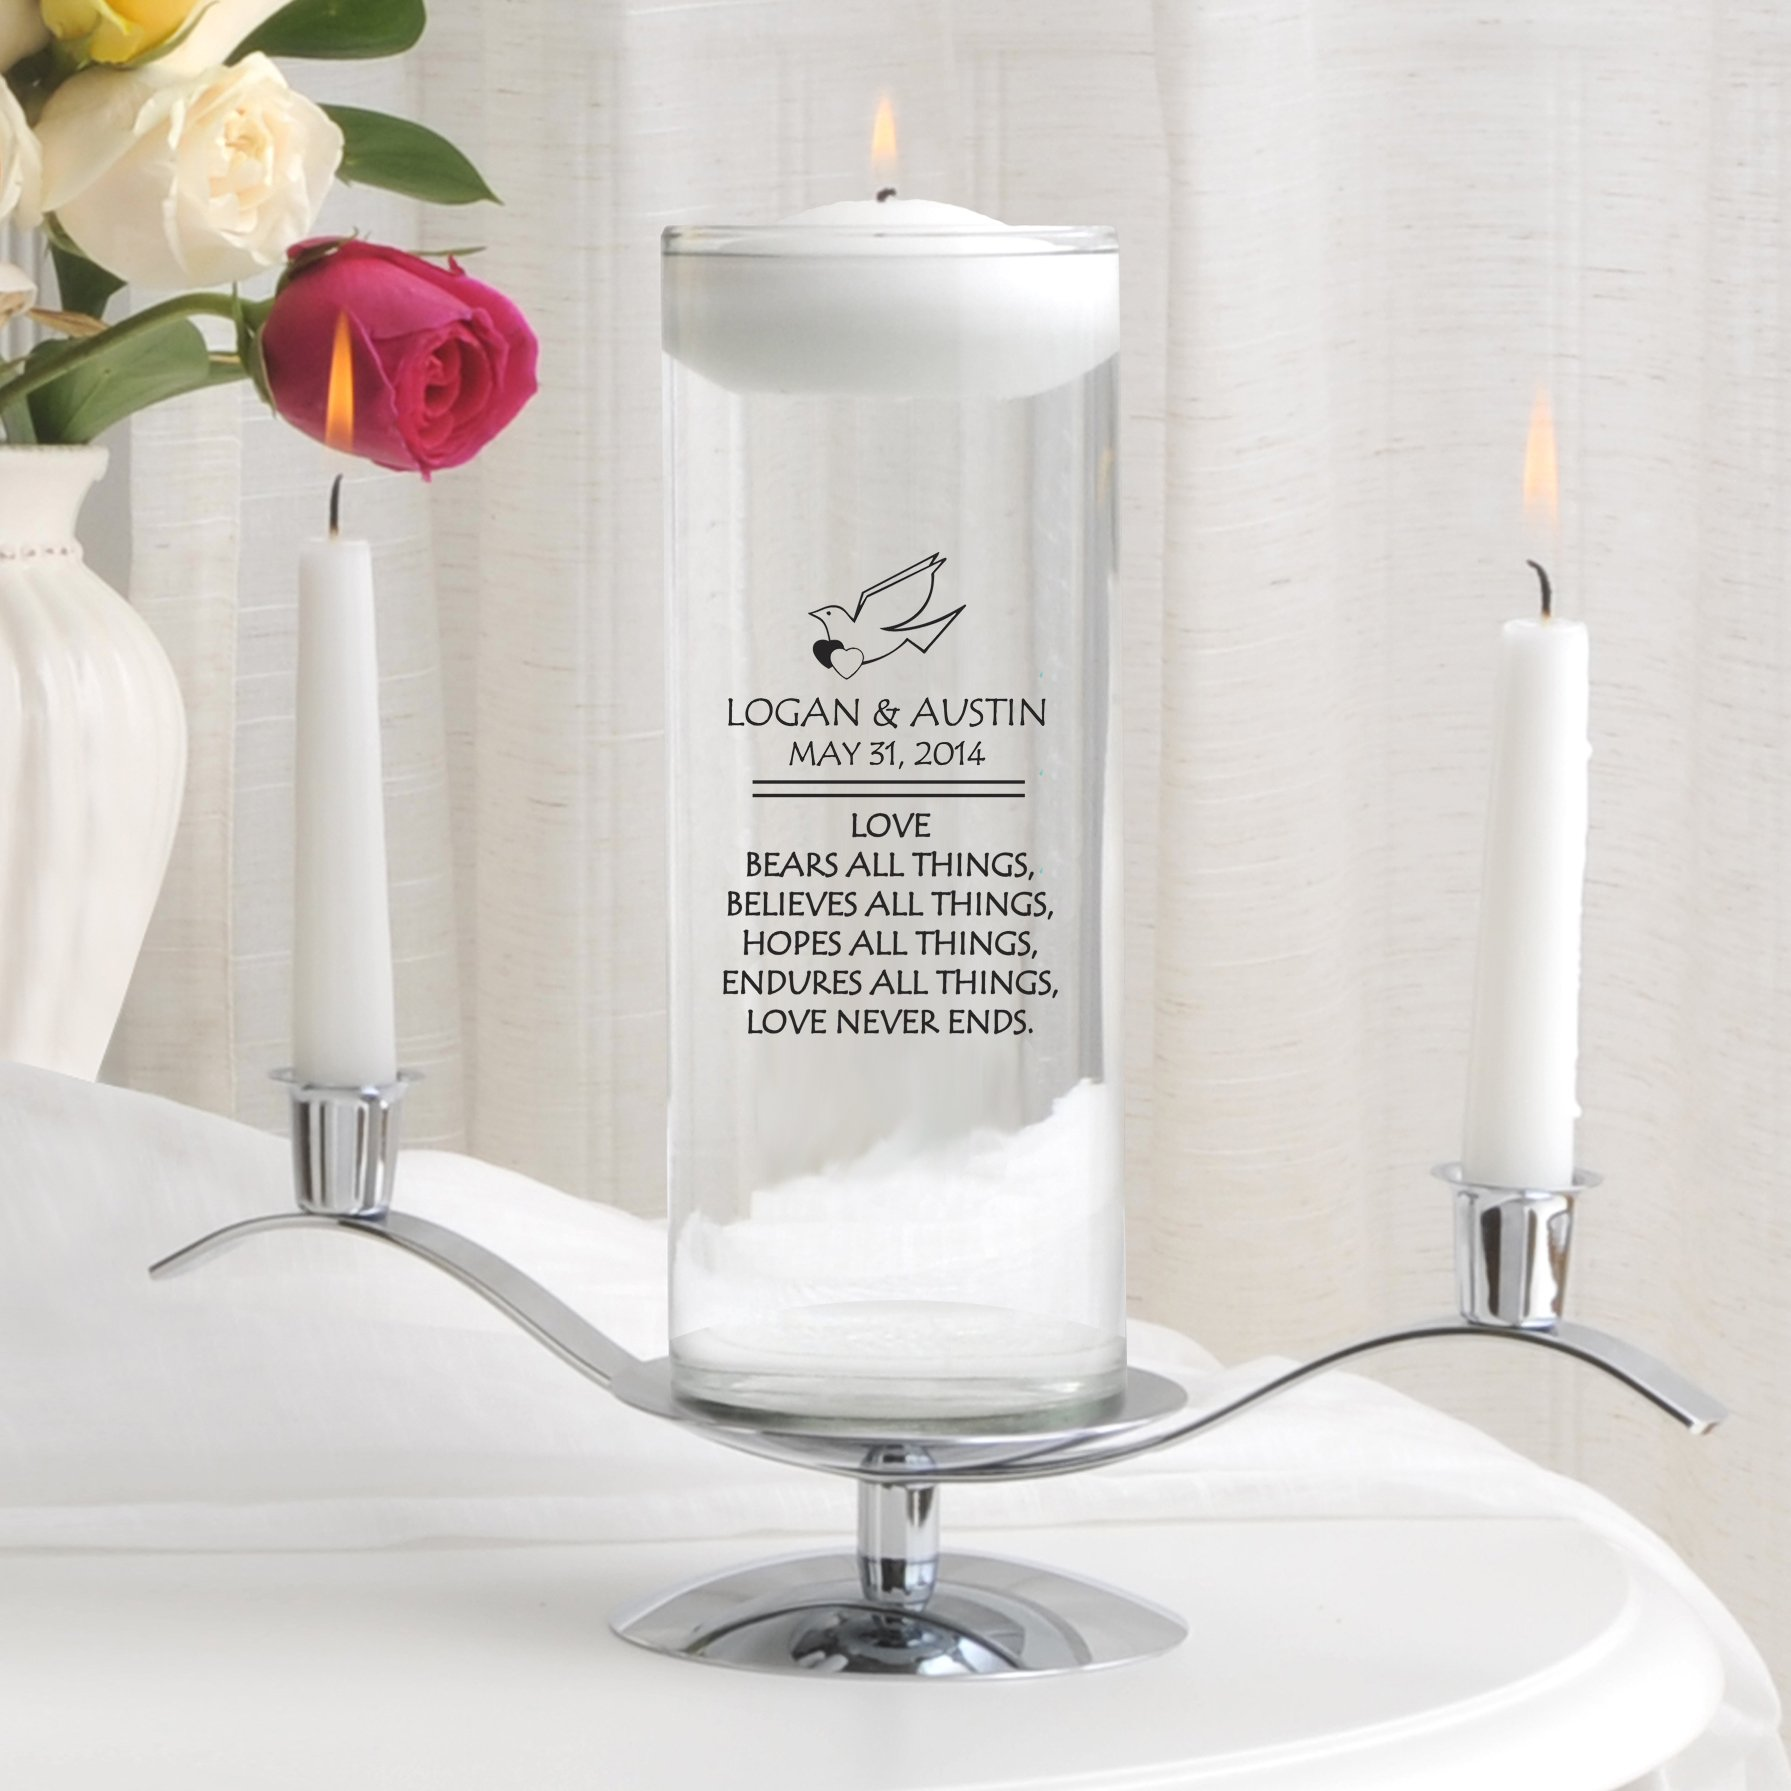 Personalized Floating Wedding Unity Candle Set- Imperial by A Gift Personalized